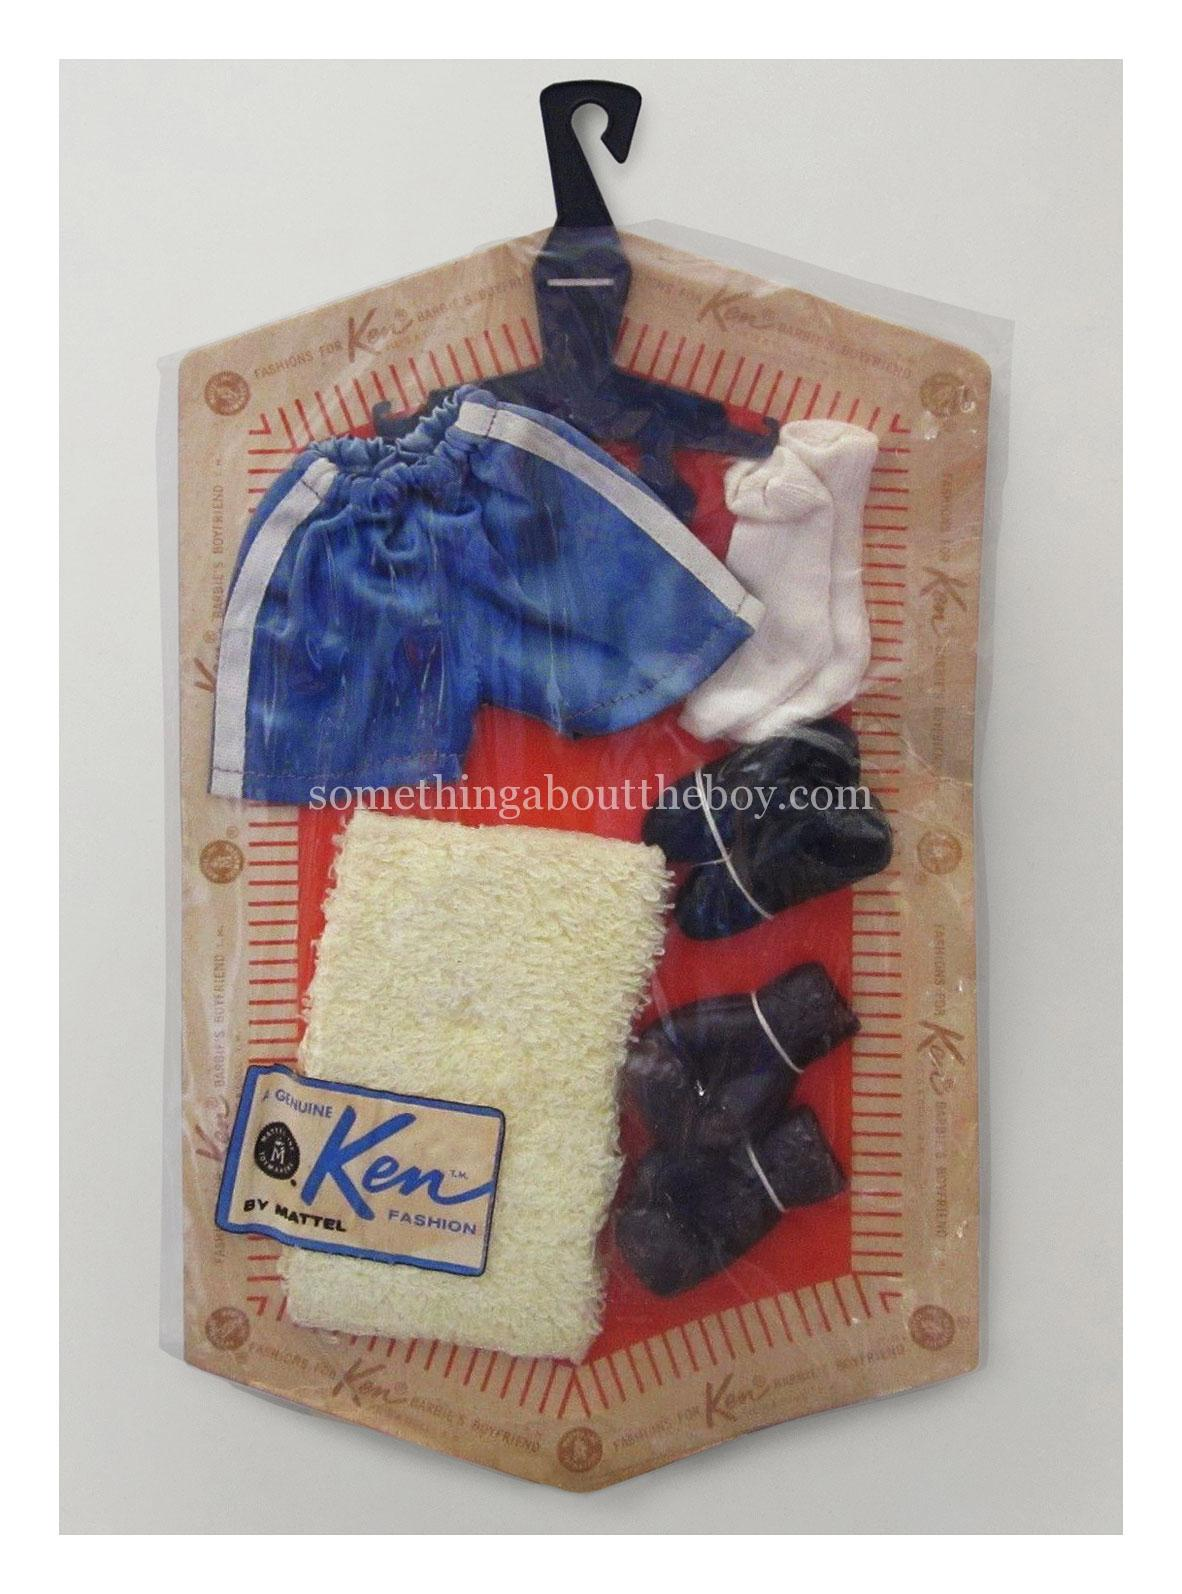 1963 Boxing Outfit in original packaging